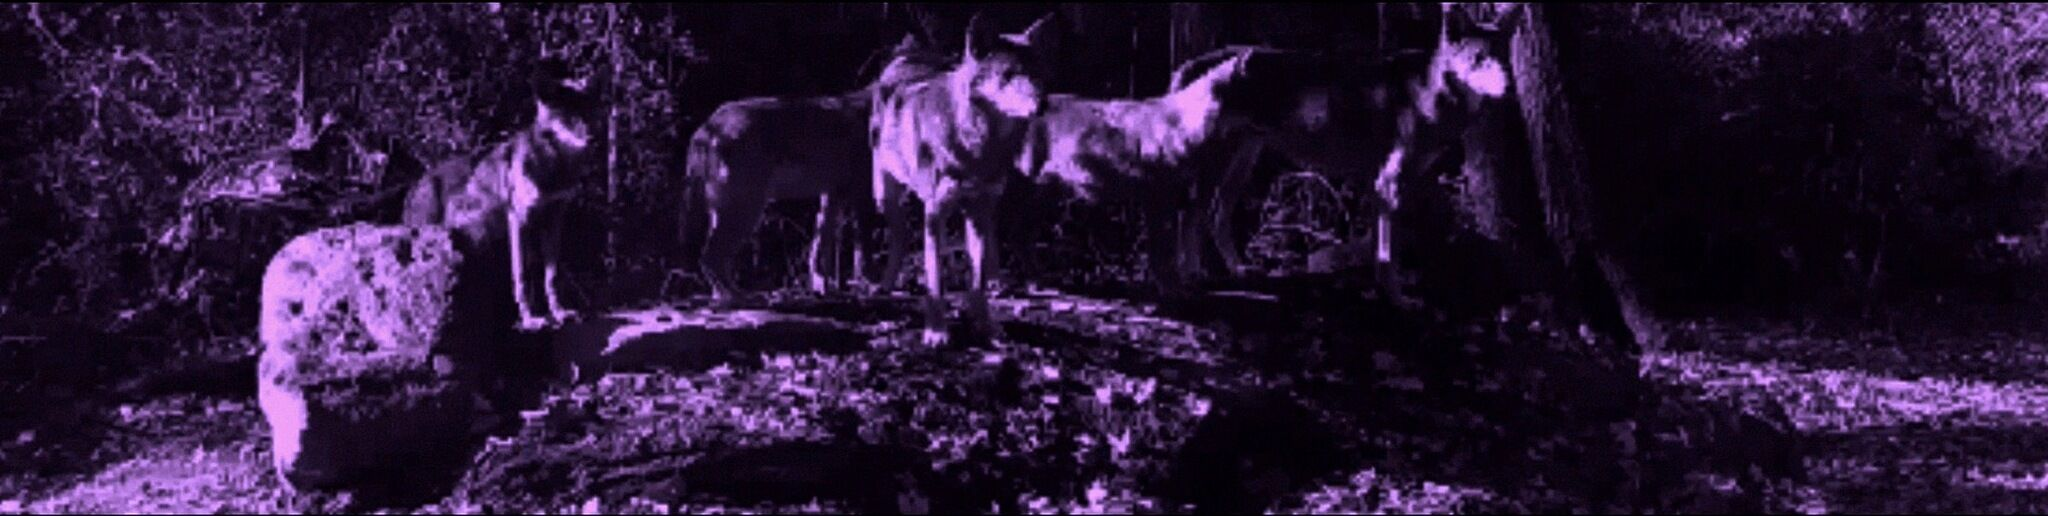 A purple image of a wolf pack